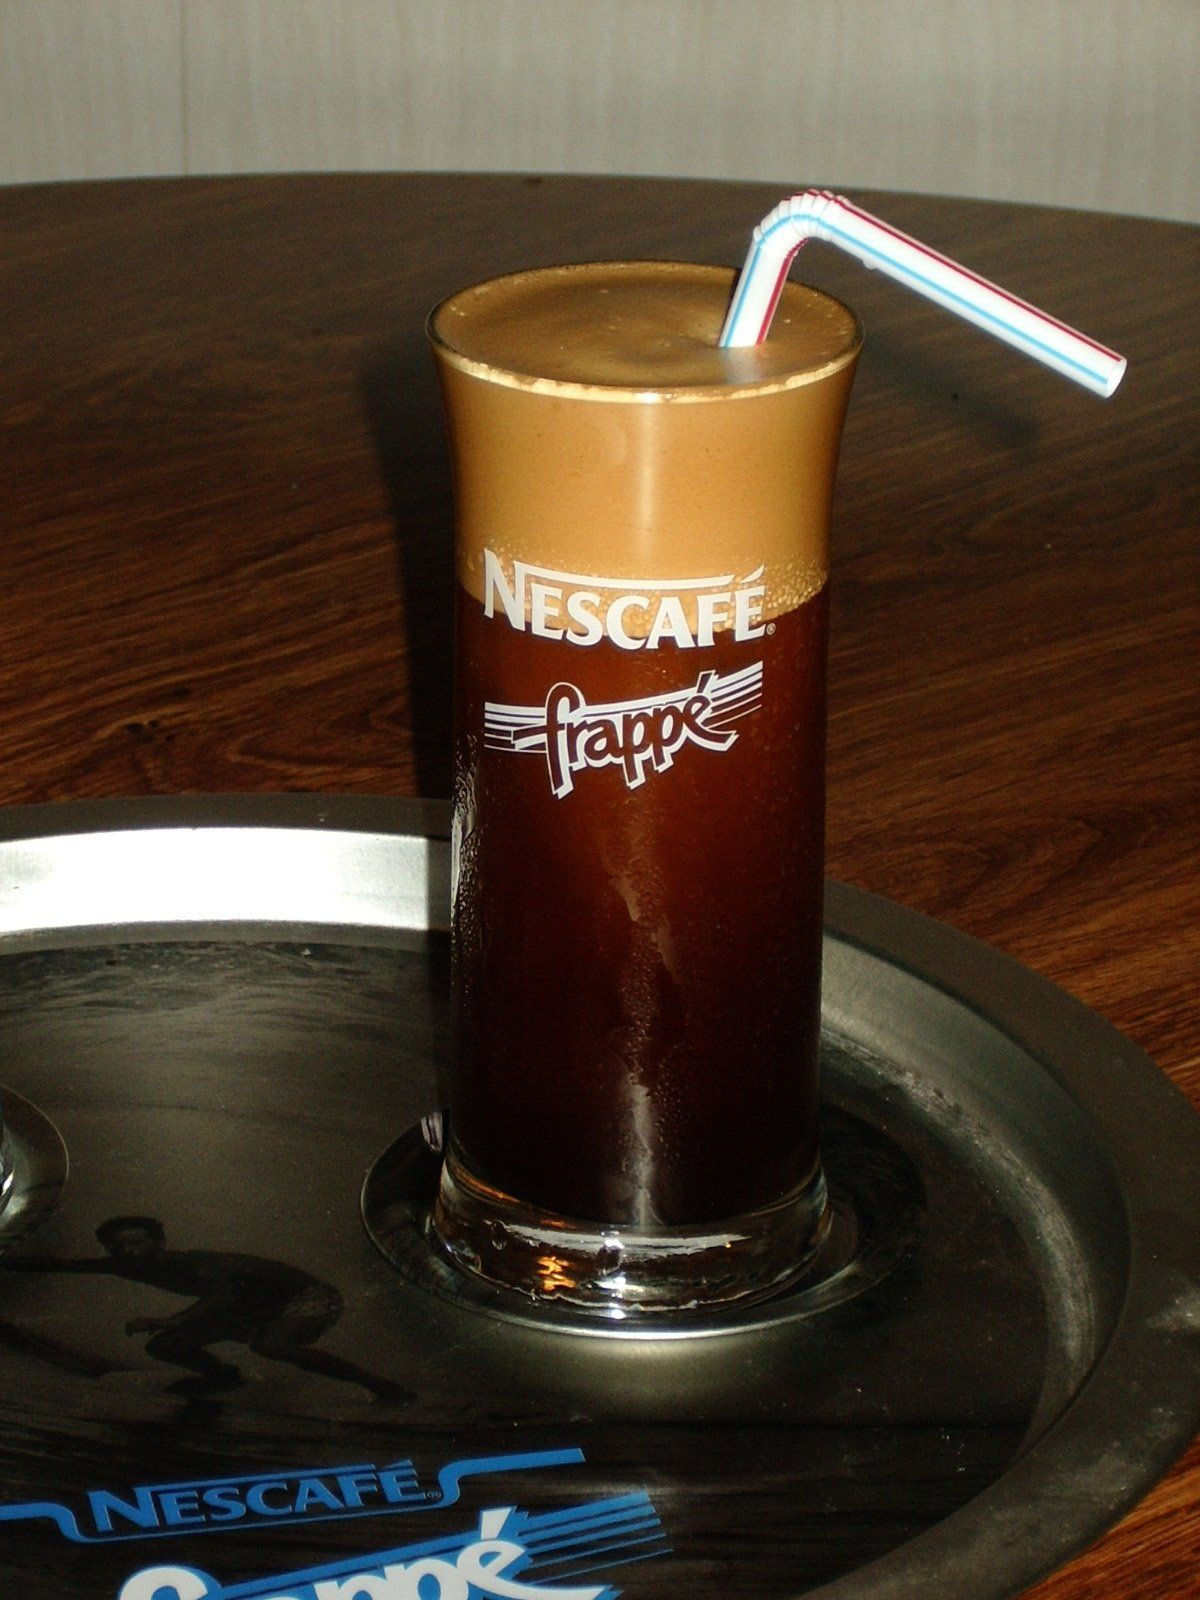 Frappé is a Greek foamcovered iced coffee drink made from